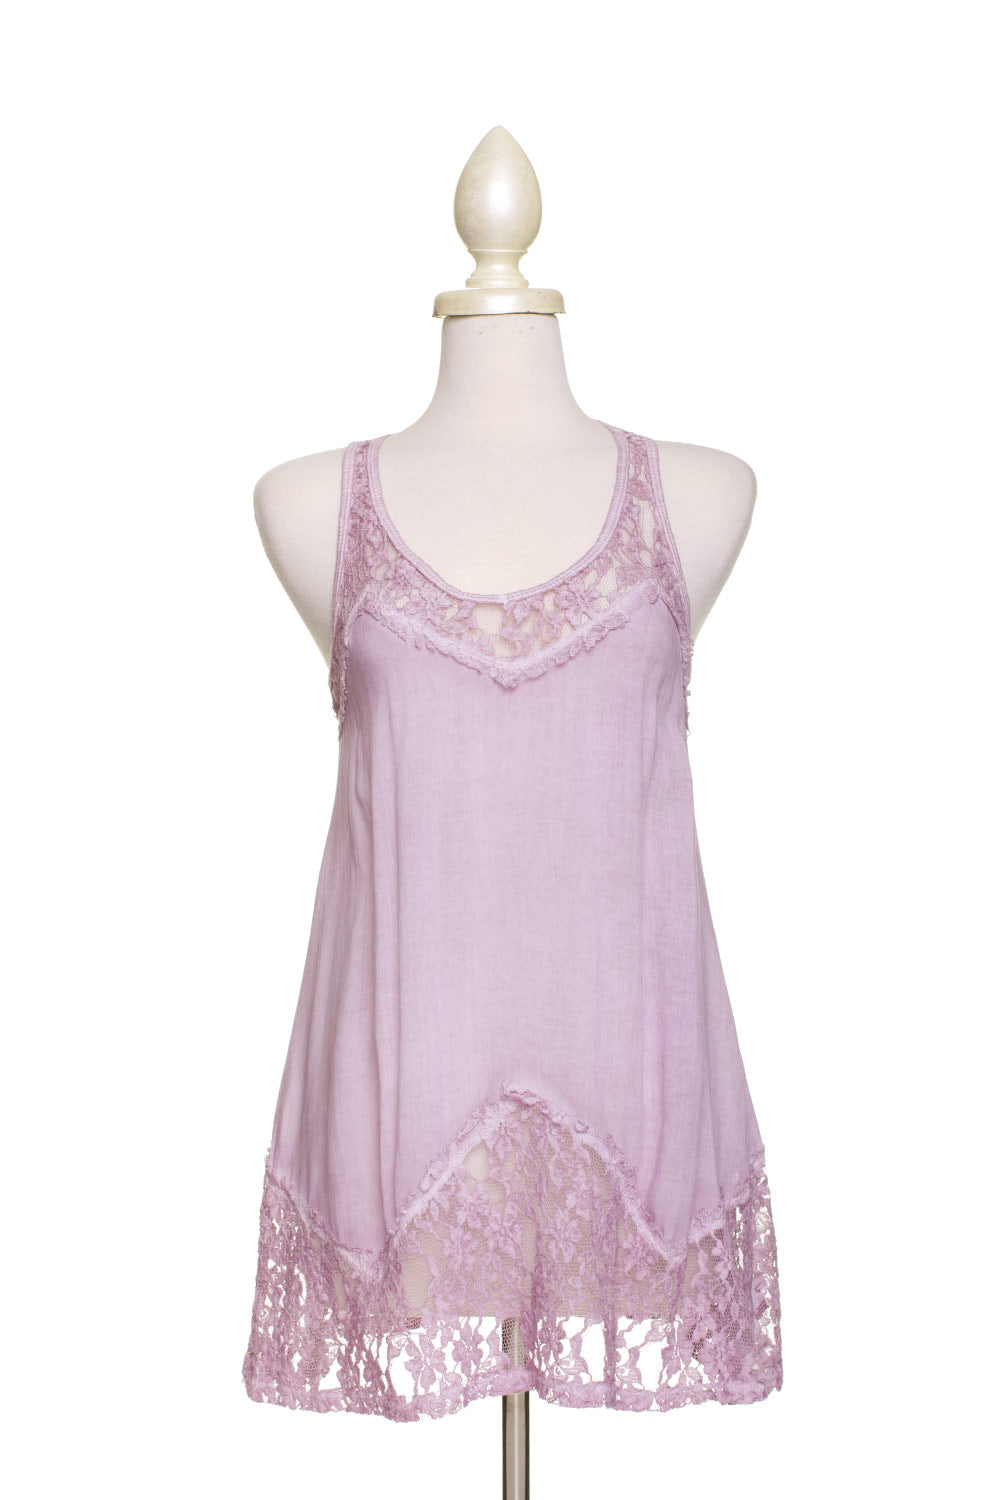 Type 2 Lacy Lilac Top